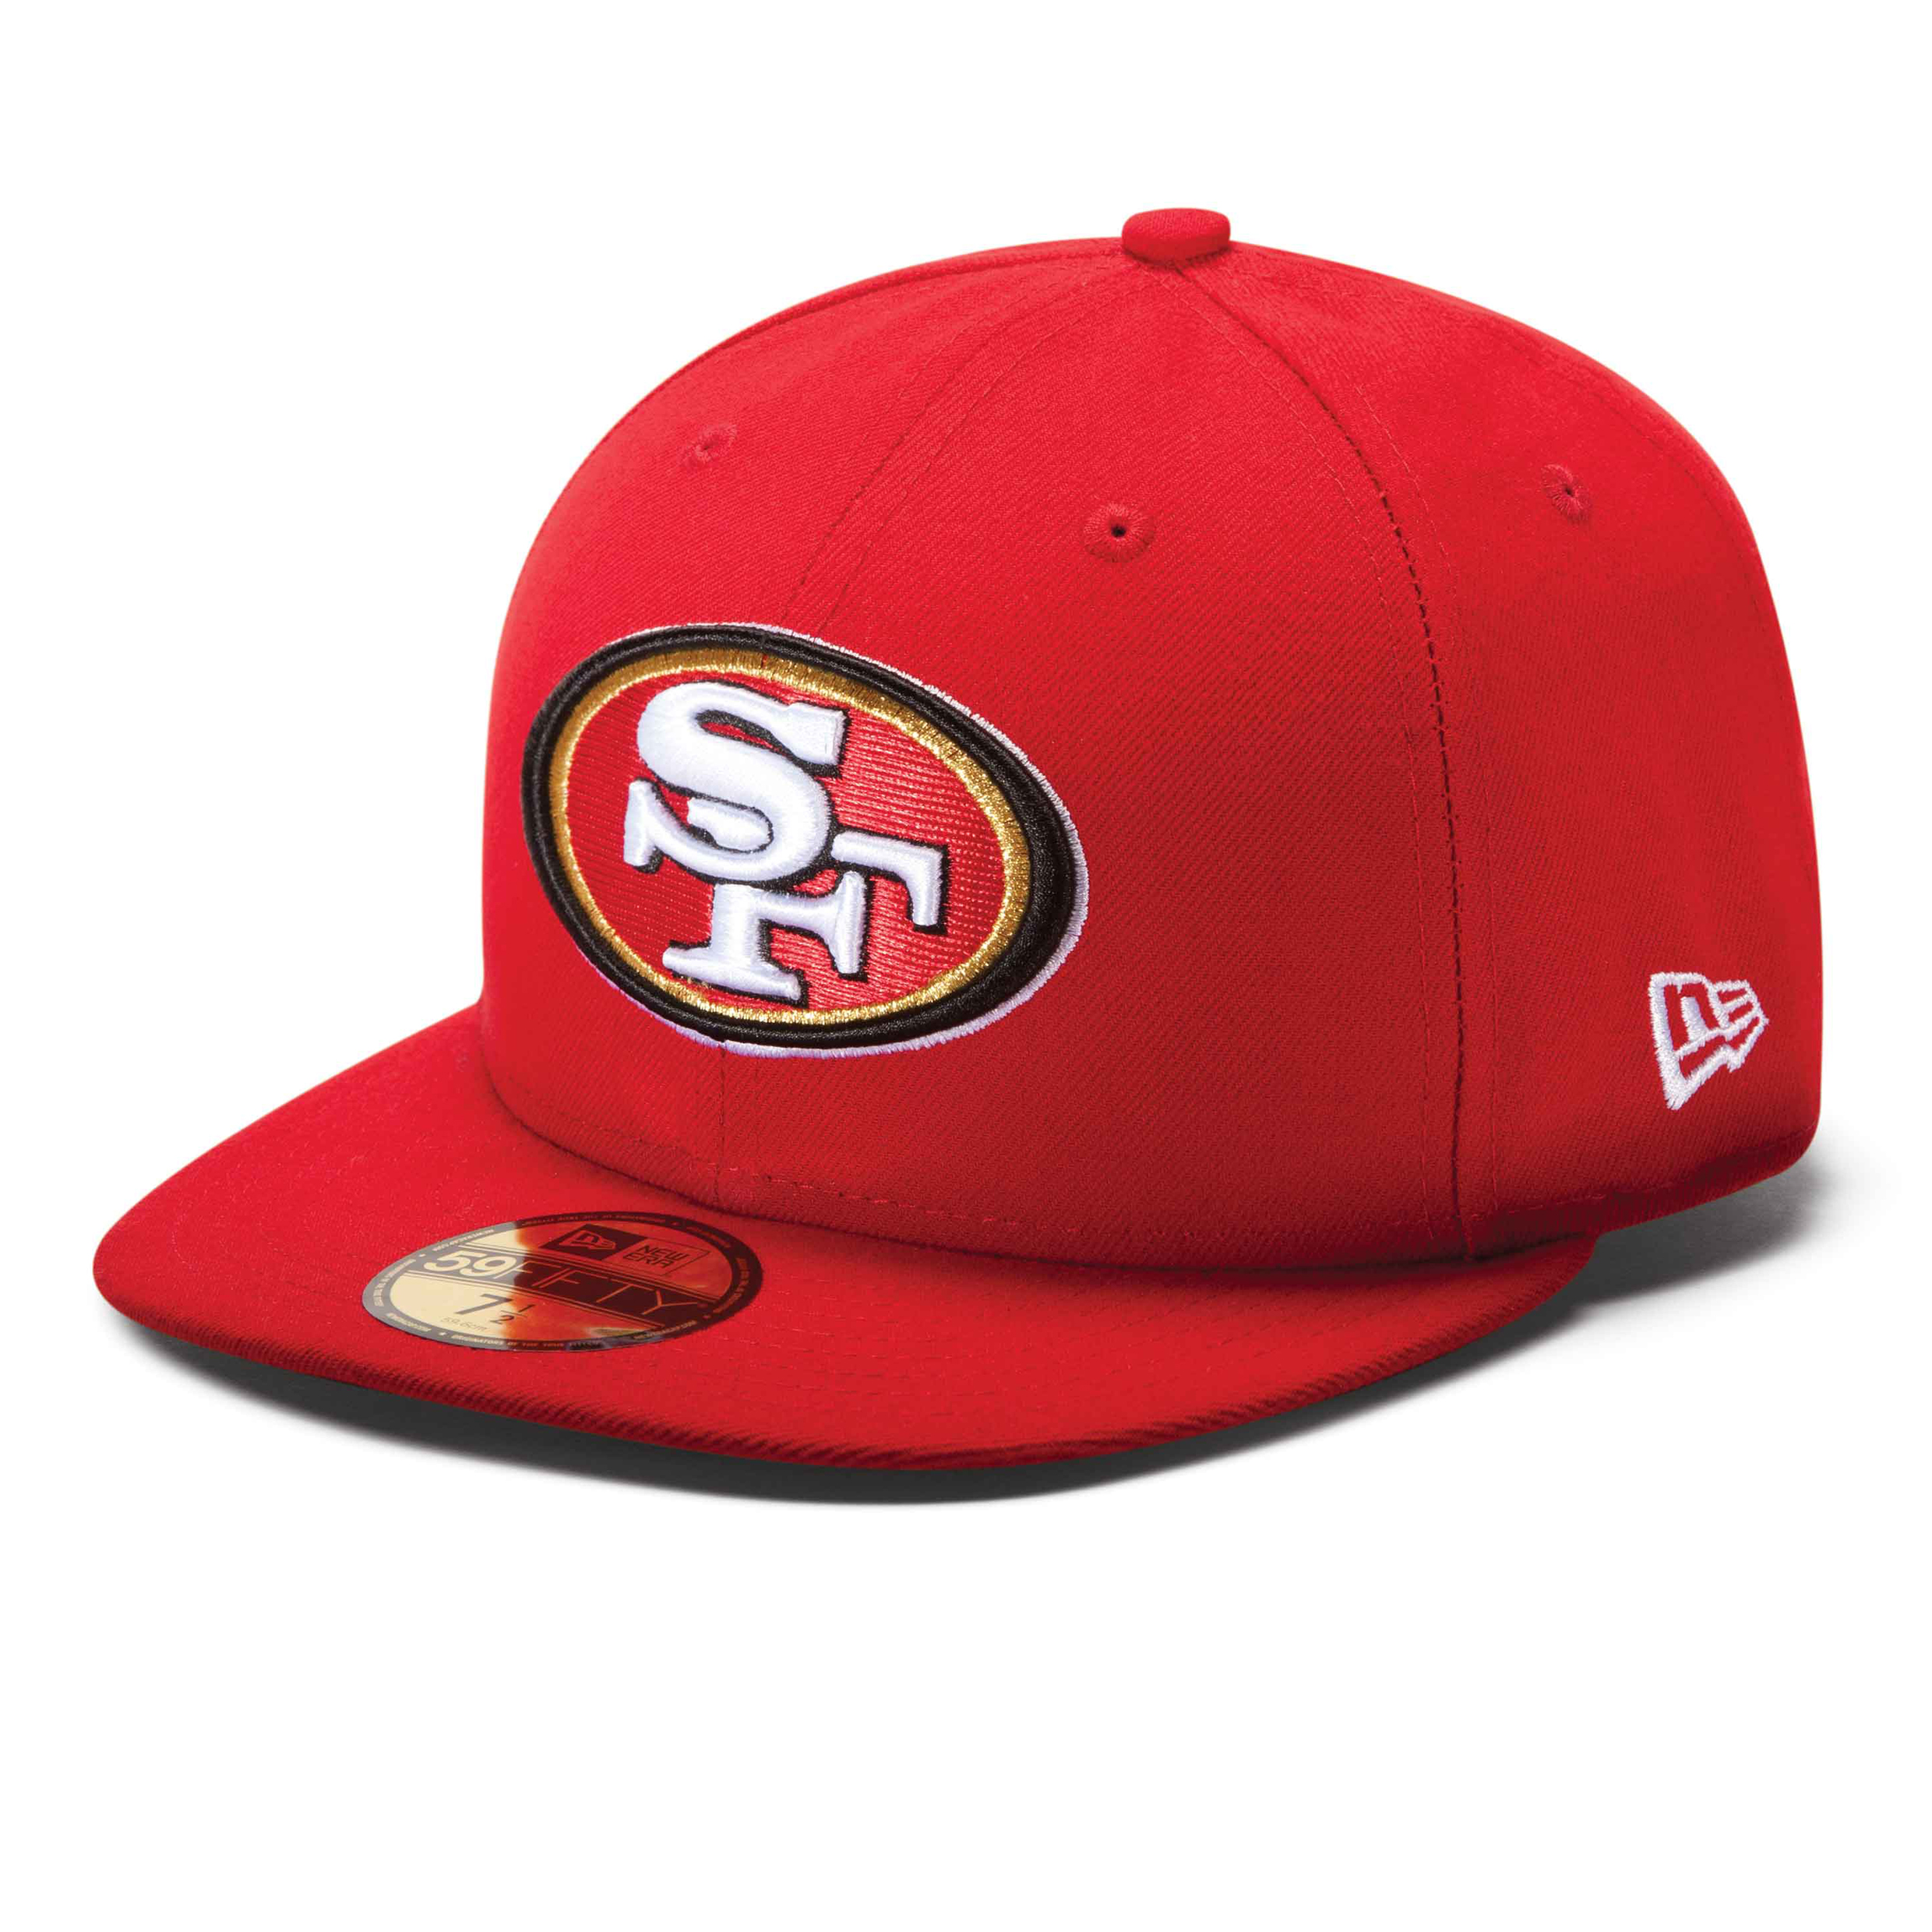 San Fransisco 49ers San Francisco 49ers New Era 59FIFTY Fitted On-Field Cap